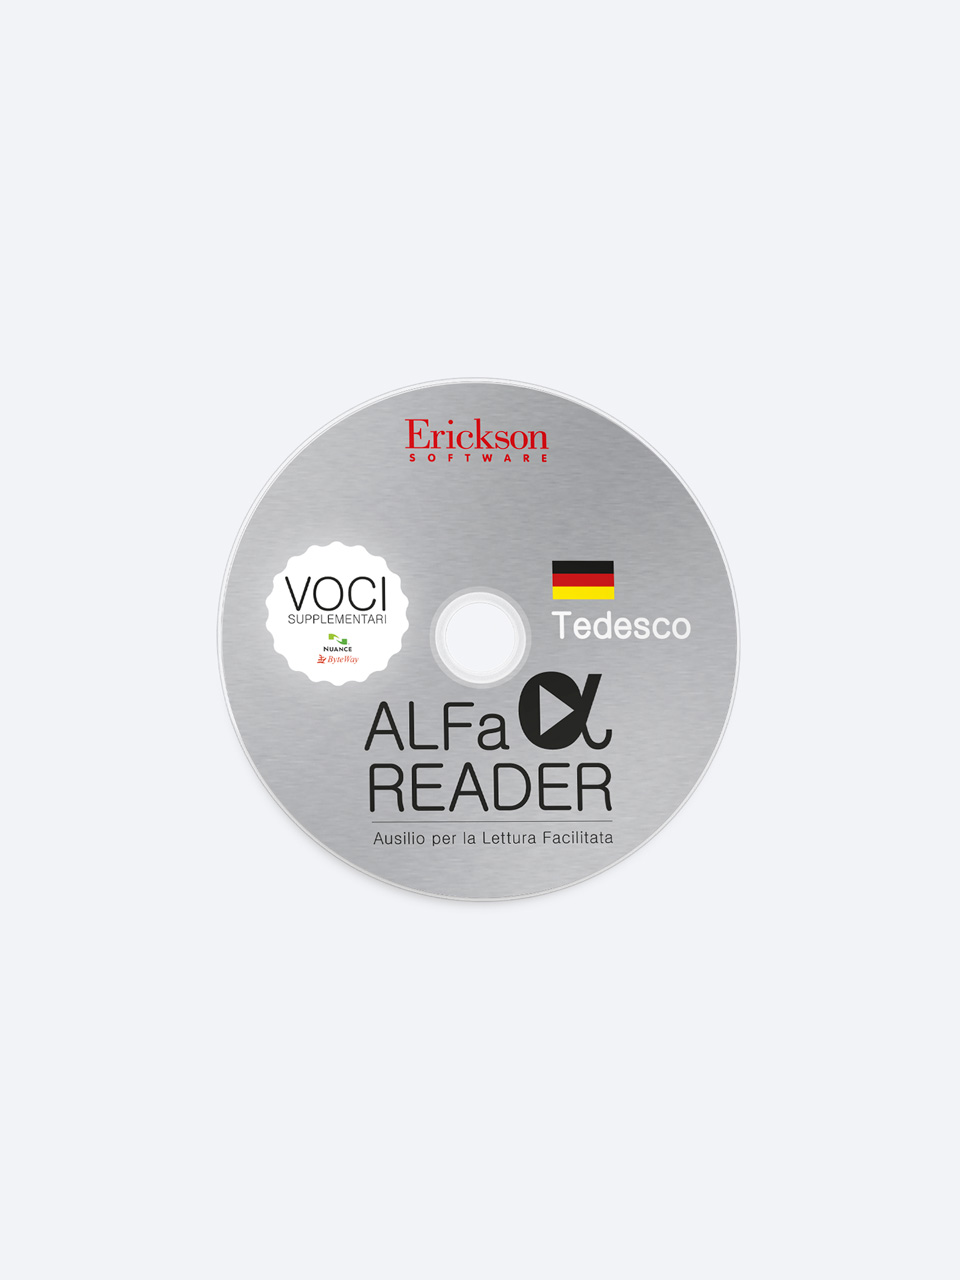 ALFa READER 3 - App e software - Erickson 3